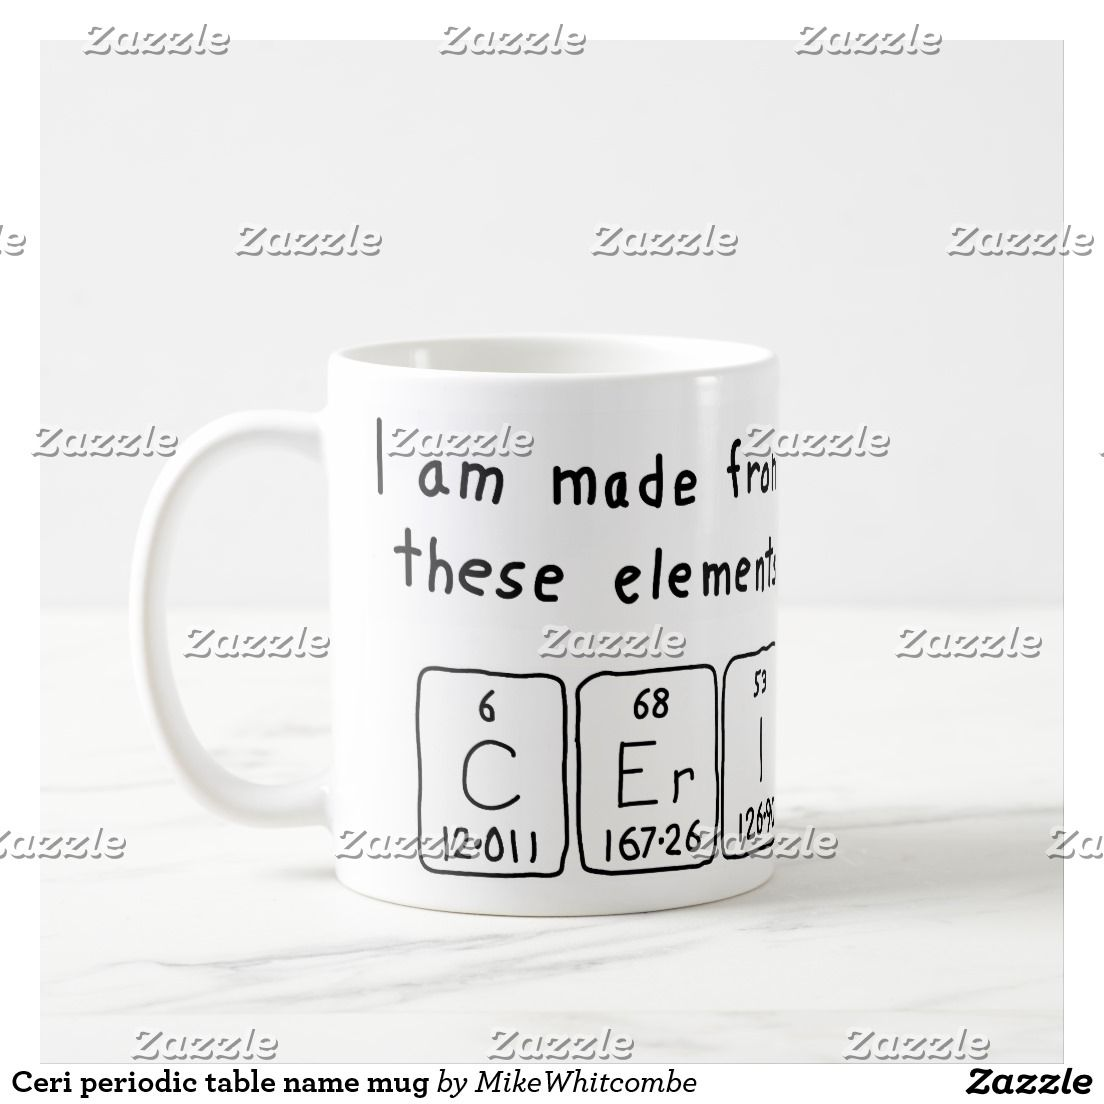 Ceri periodic table name mug november 2016 sales form my zazzle shop cat periodic table name mug created by mikewhitcombe personalise it with photos text or purchase as is urtaz Gallery